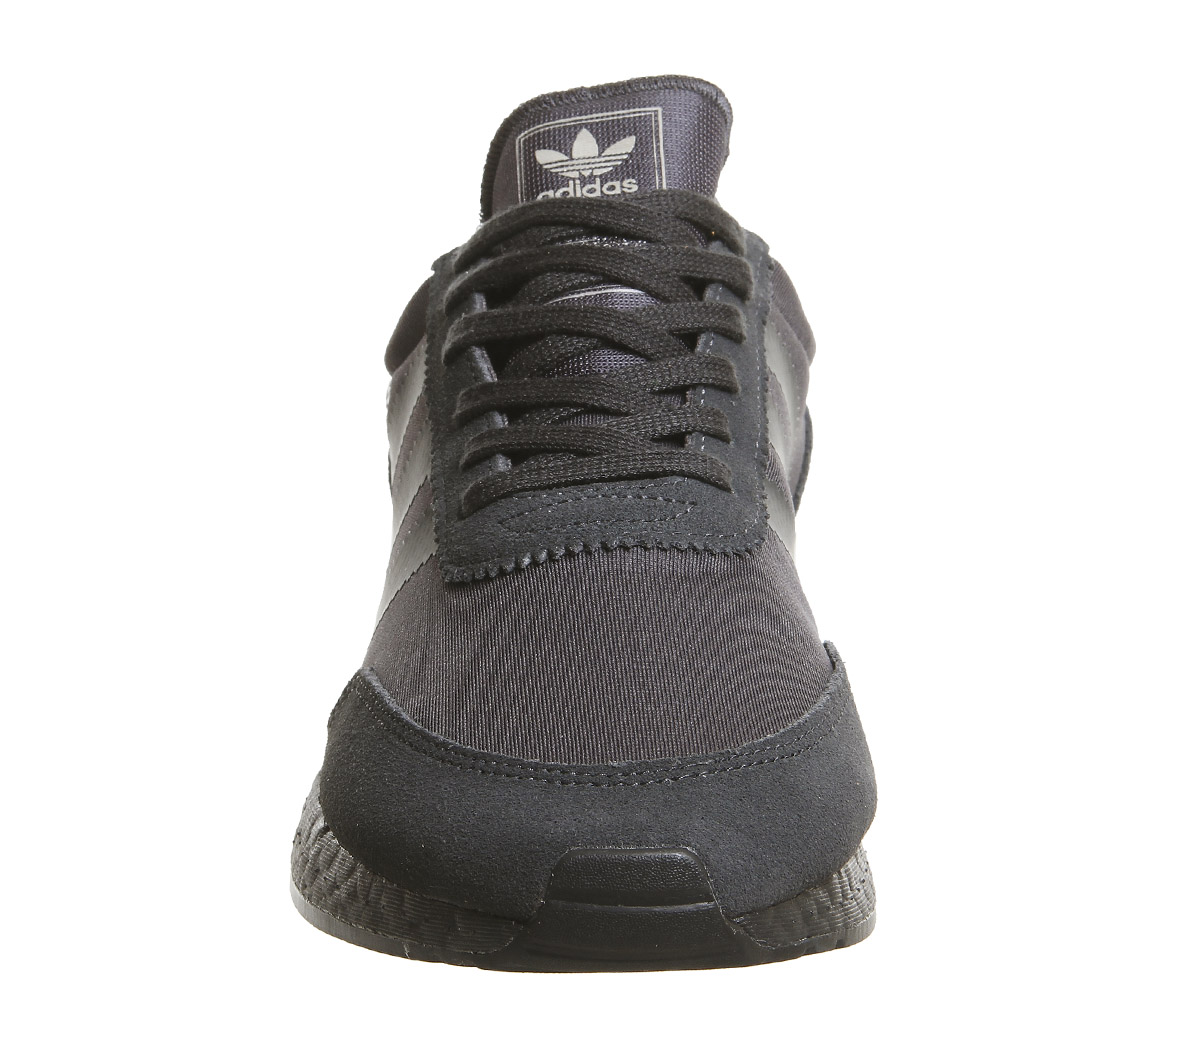 Womens-Adidas-I-5923-Trainers-Carbon-Core-Black-Exclusive-Trainers-Shoes